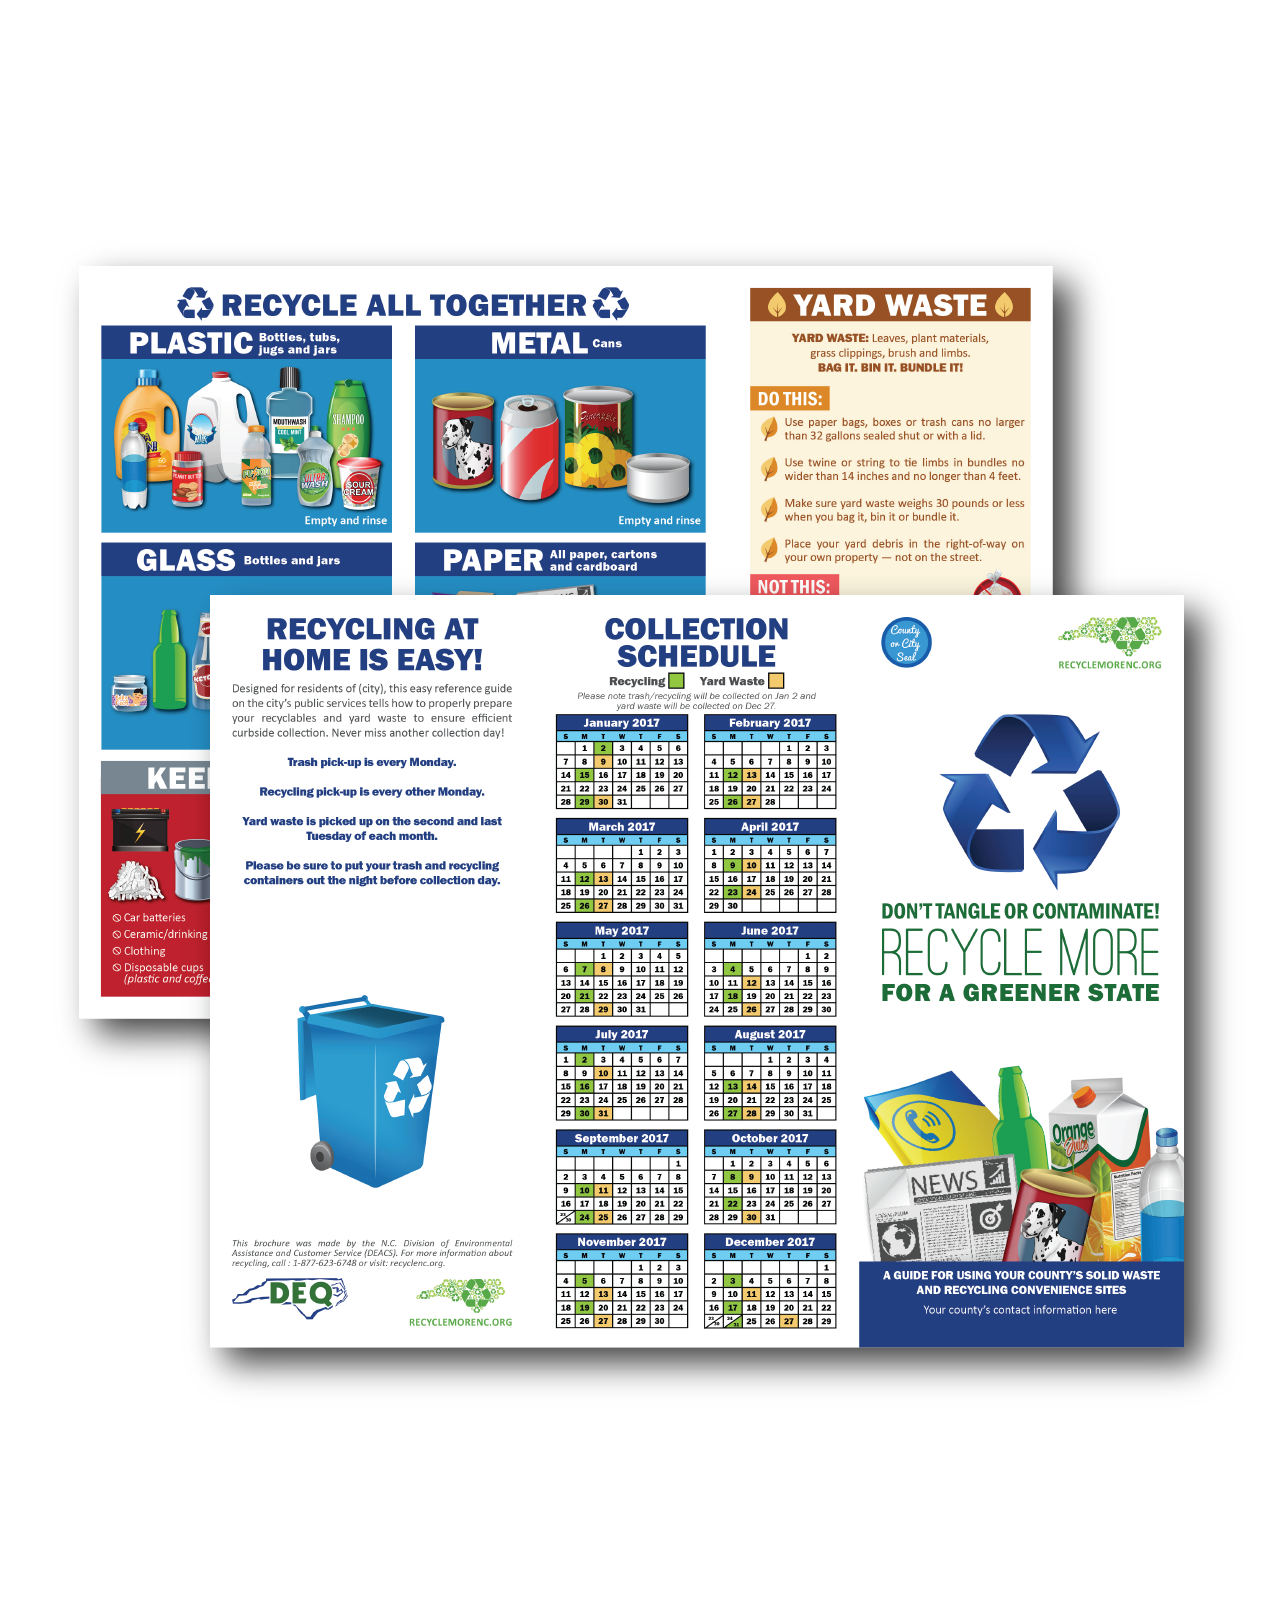 Recycling collection schedule